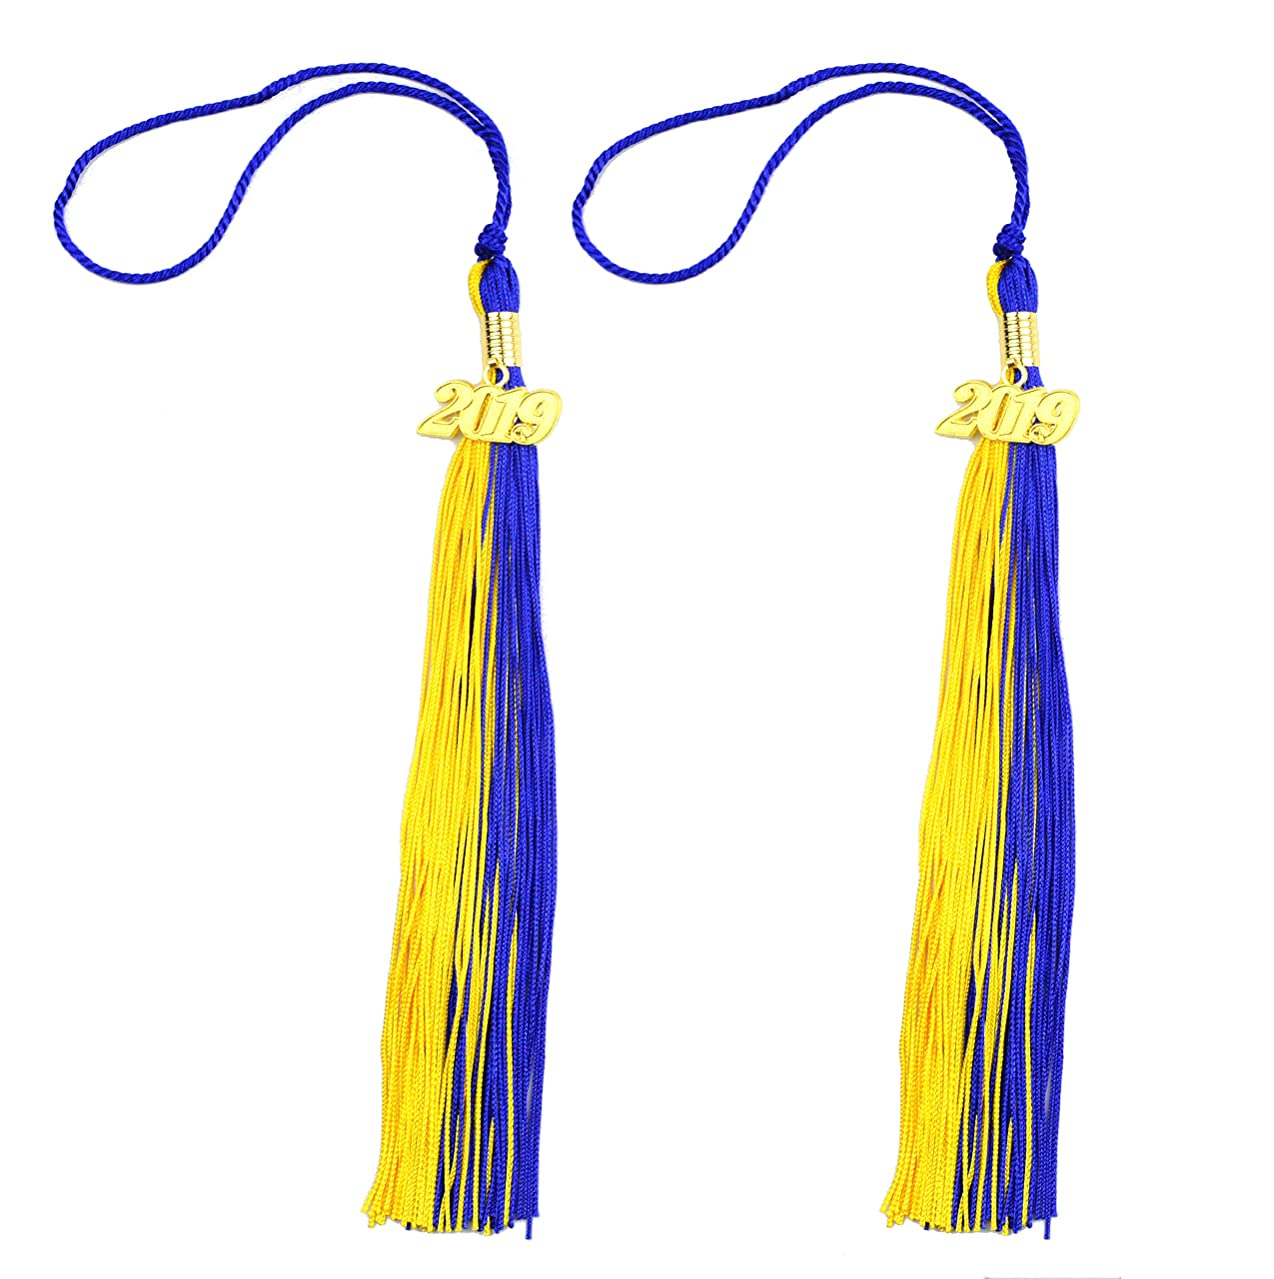 Makhry 2pcs 15.7 inches/41cm Handmade Silk Graduation Honor Tassel with 2019 Year Charm for Graduation Cap,Graduation Gift,Souvenir (2, Navy Blue&Gold)